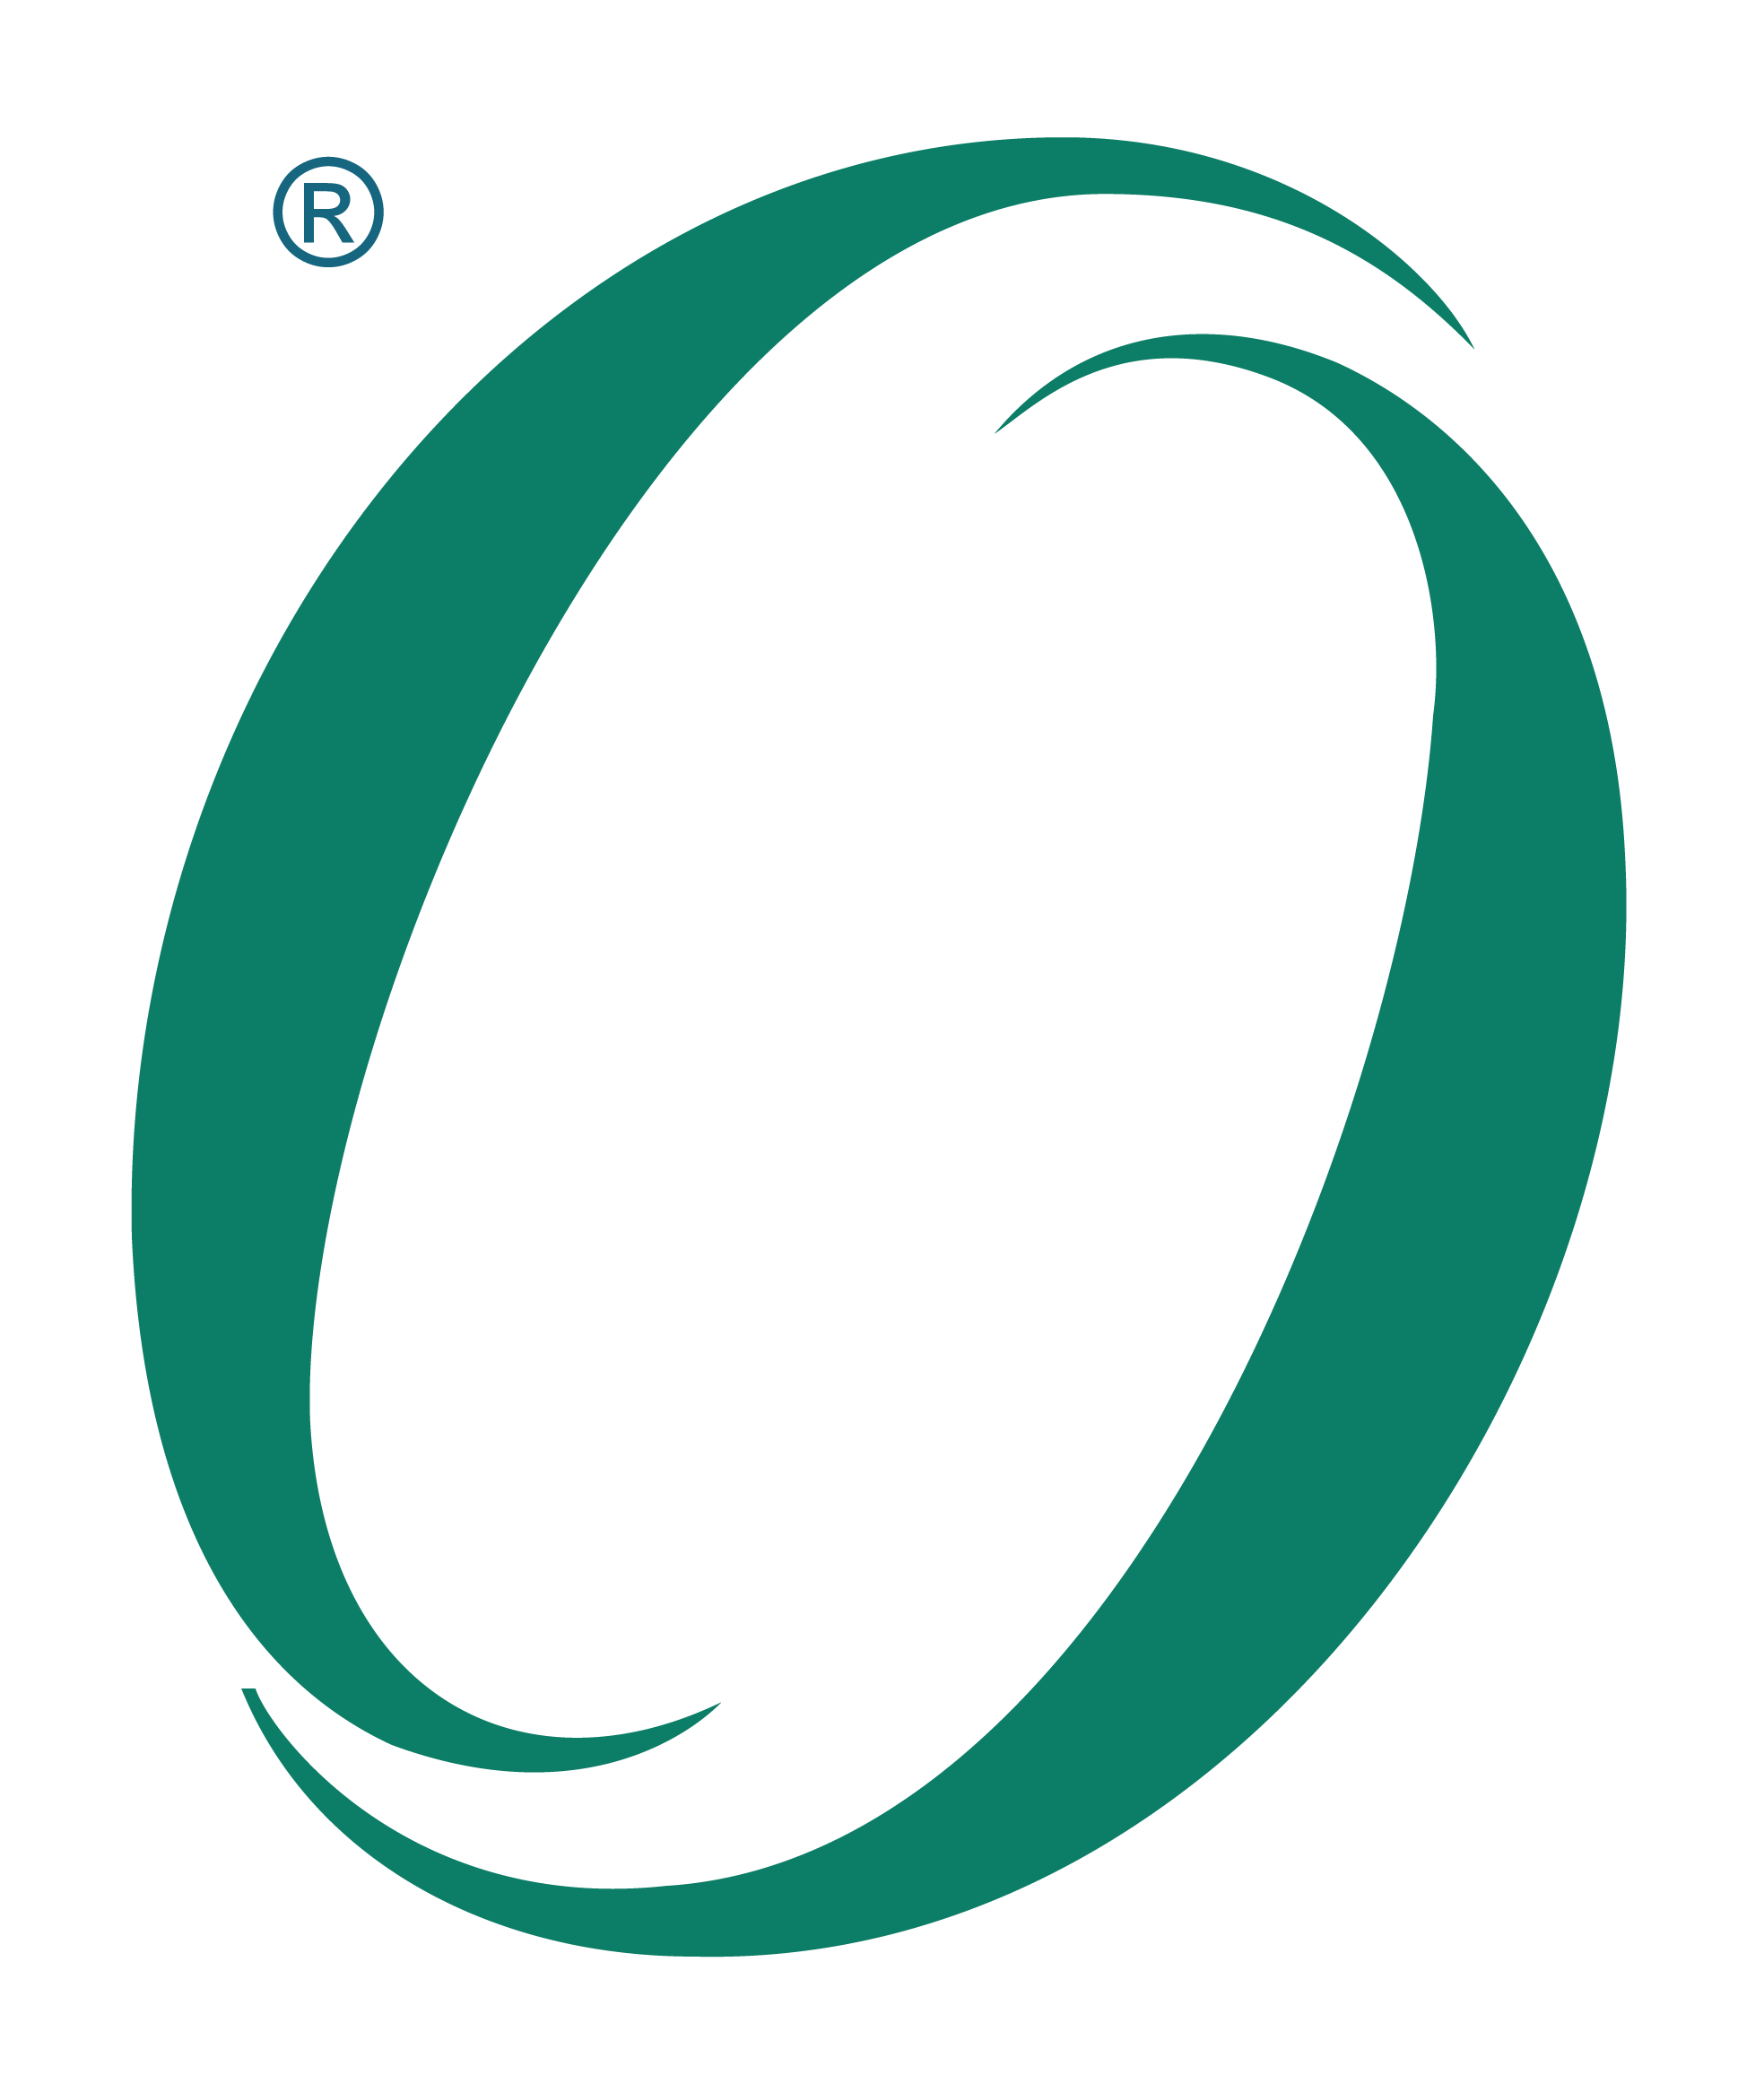 The Open Group Blog Volume 6 Issue 1 (January 2018 – December 2018)